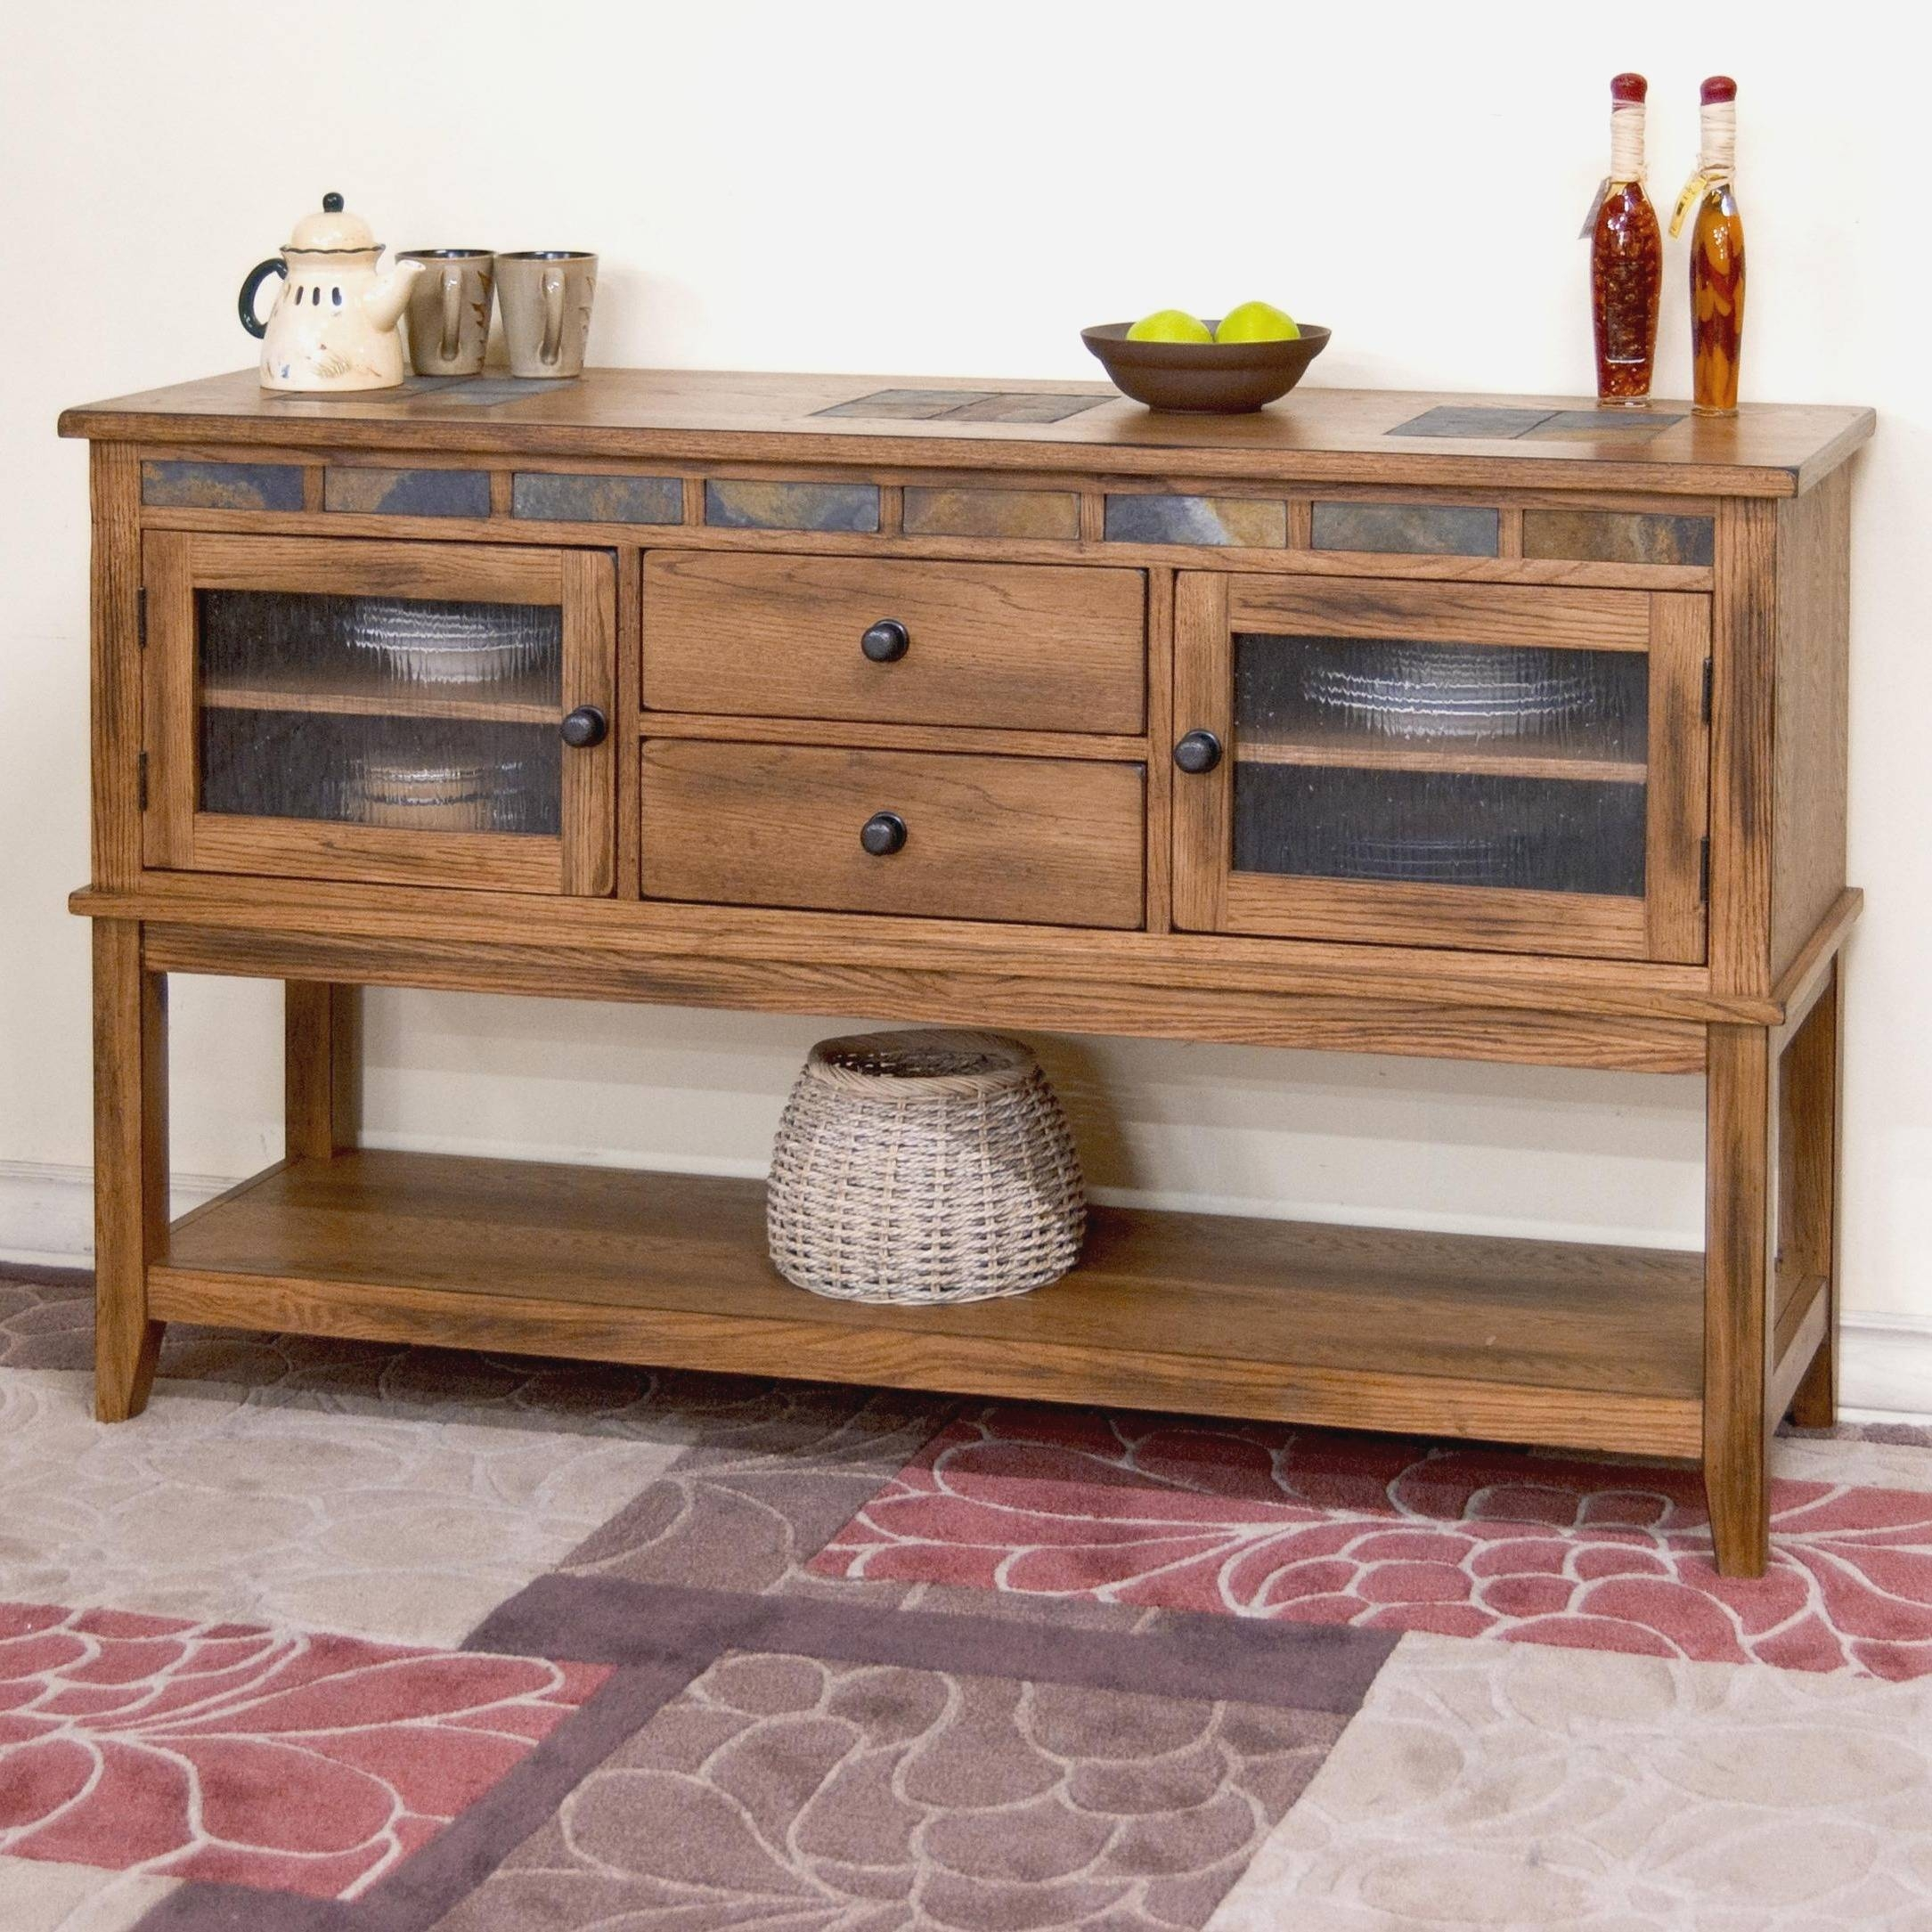 Beautiful Sideboards And Servers – Bjdgjy Within Sideboards And Servers (View 3 of 15)